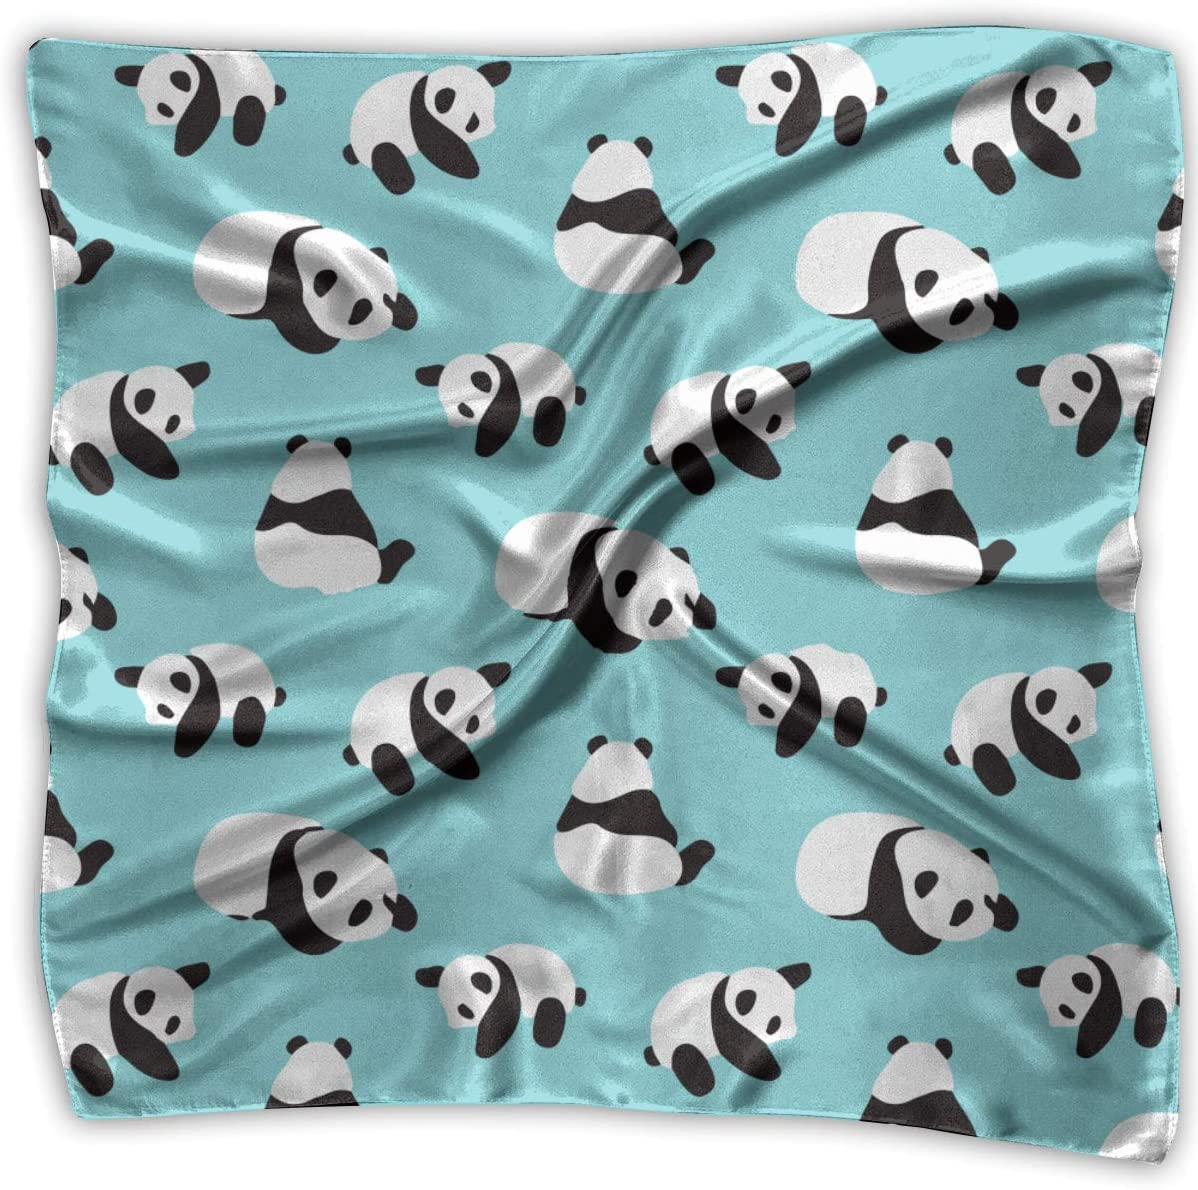 WFIRE Cute Cartoon Panda Square Handkerchiefs Scarf Shawl Bandanas Headscarf Neckerchief